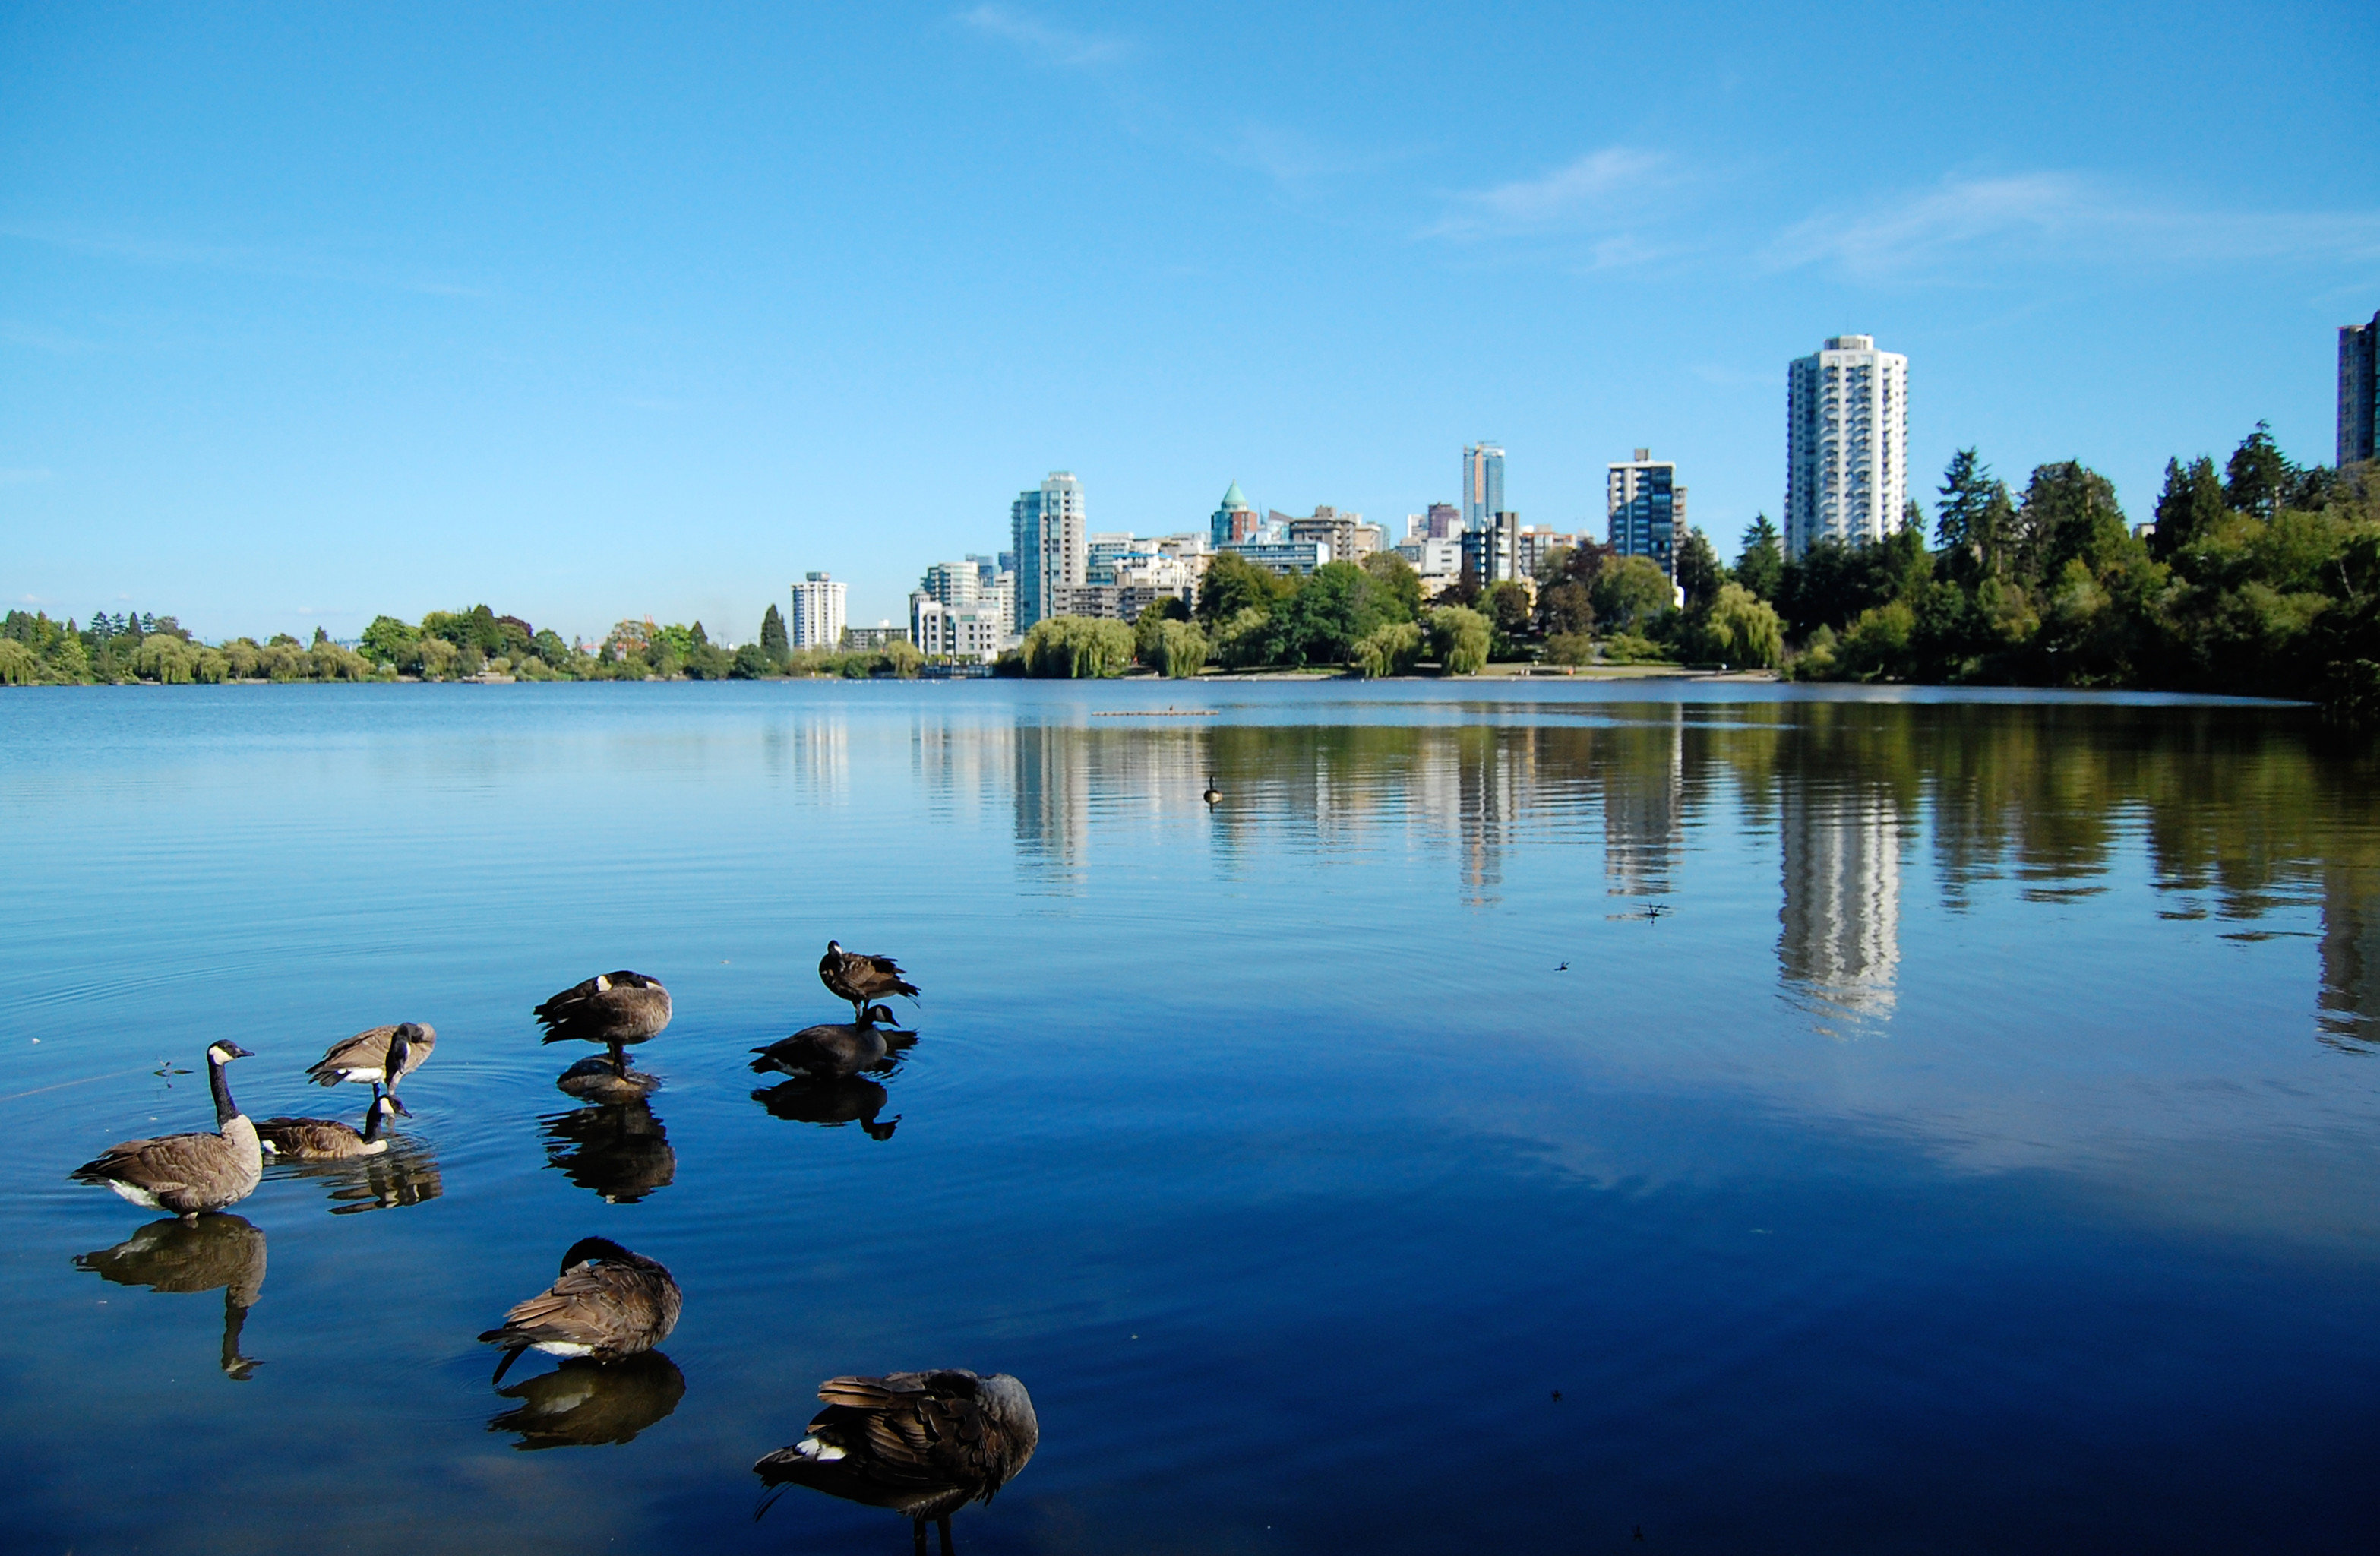 City Modern Parks Scenic views water sky Boat Lake River tree Nature morning Sea dusk park shore